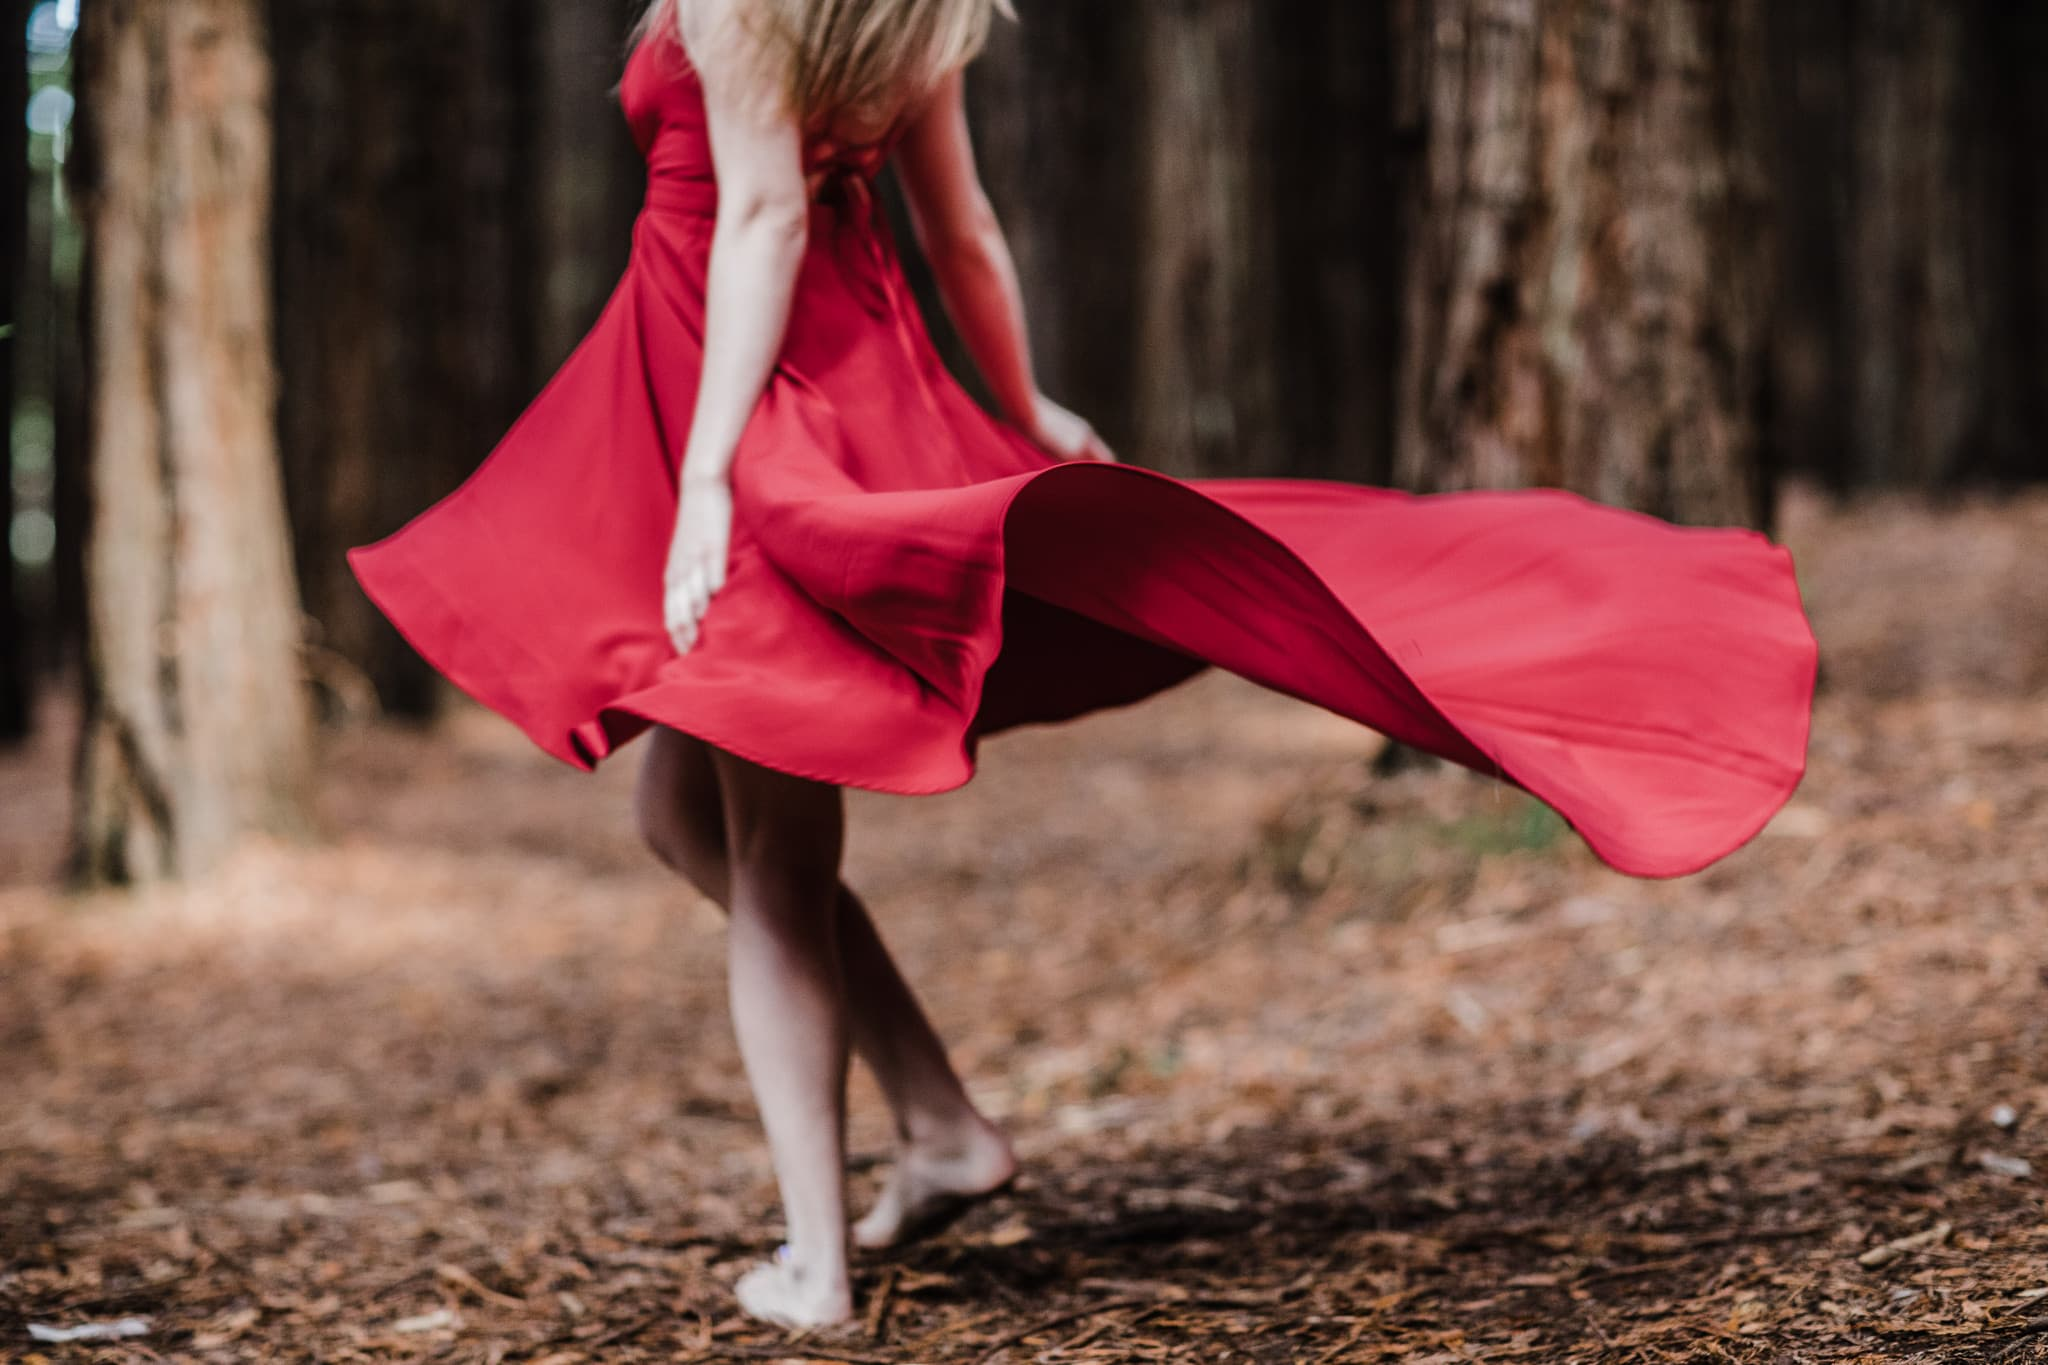 sweeping red dress - beauty & fashion motion photography